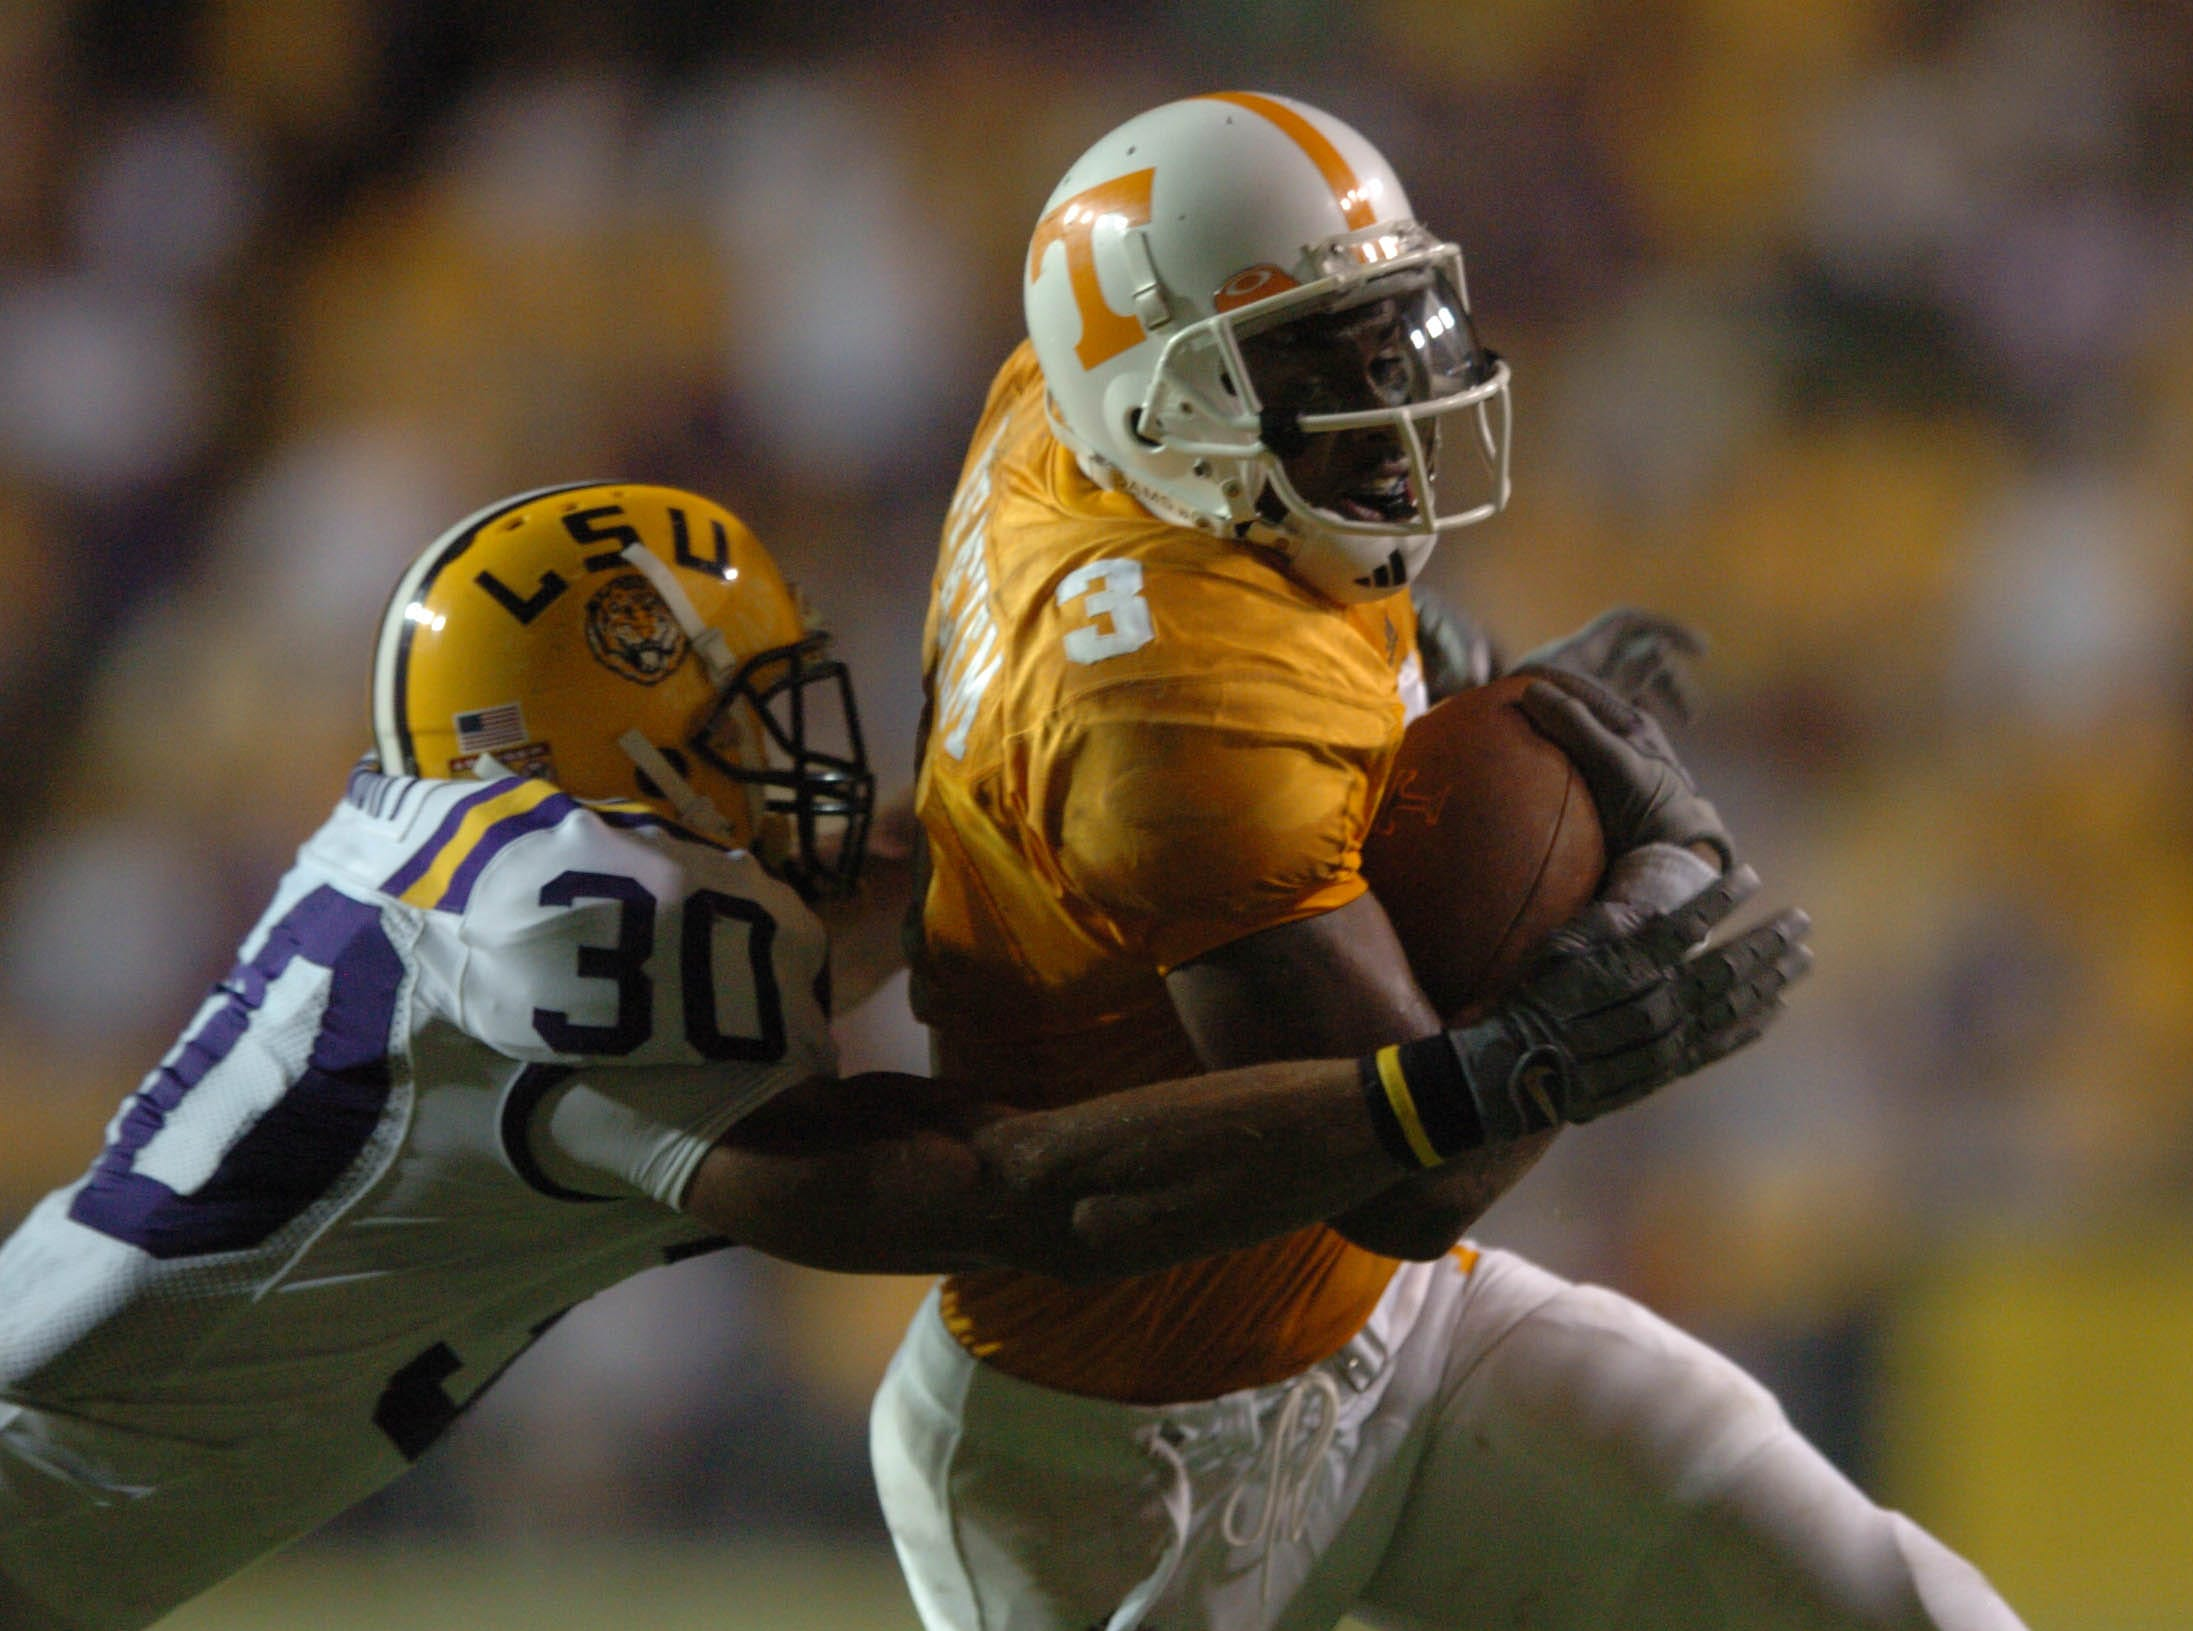 UT's Robert Meachem, right, gets past LSU's LaRon Landry in the second half Monday in Baton Rouge.  Tennessee beat LSU in overtime 30-27. 09/26/2005